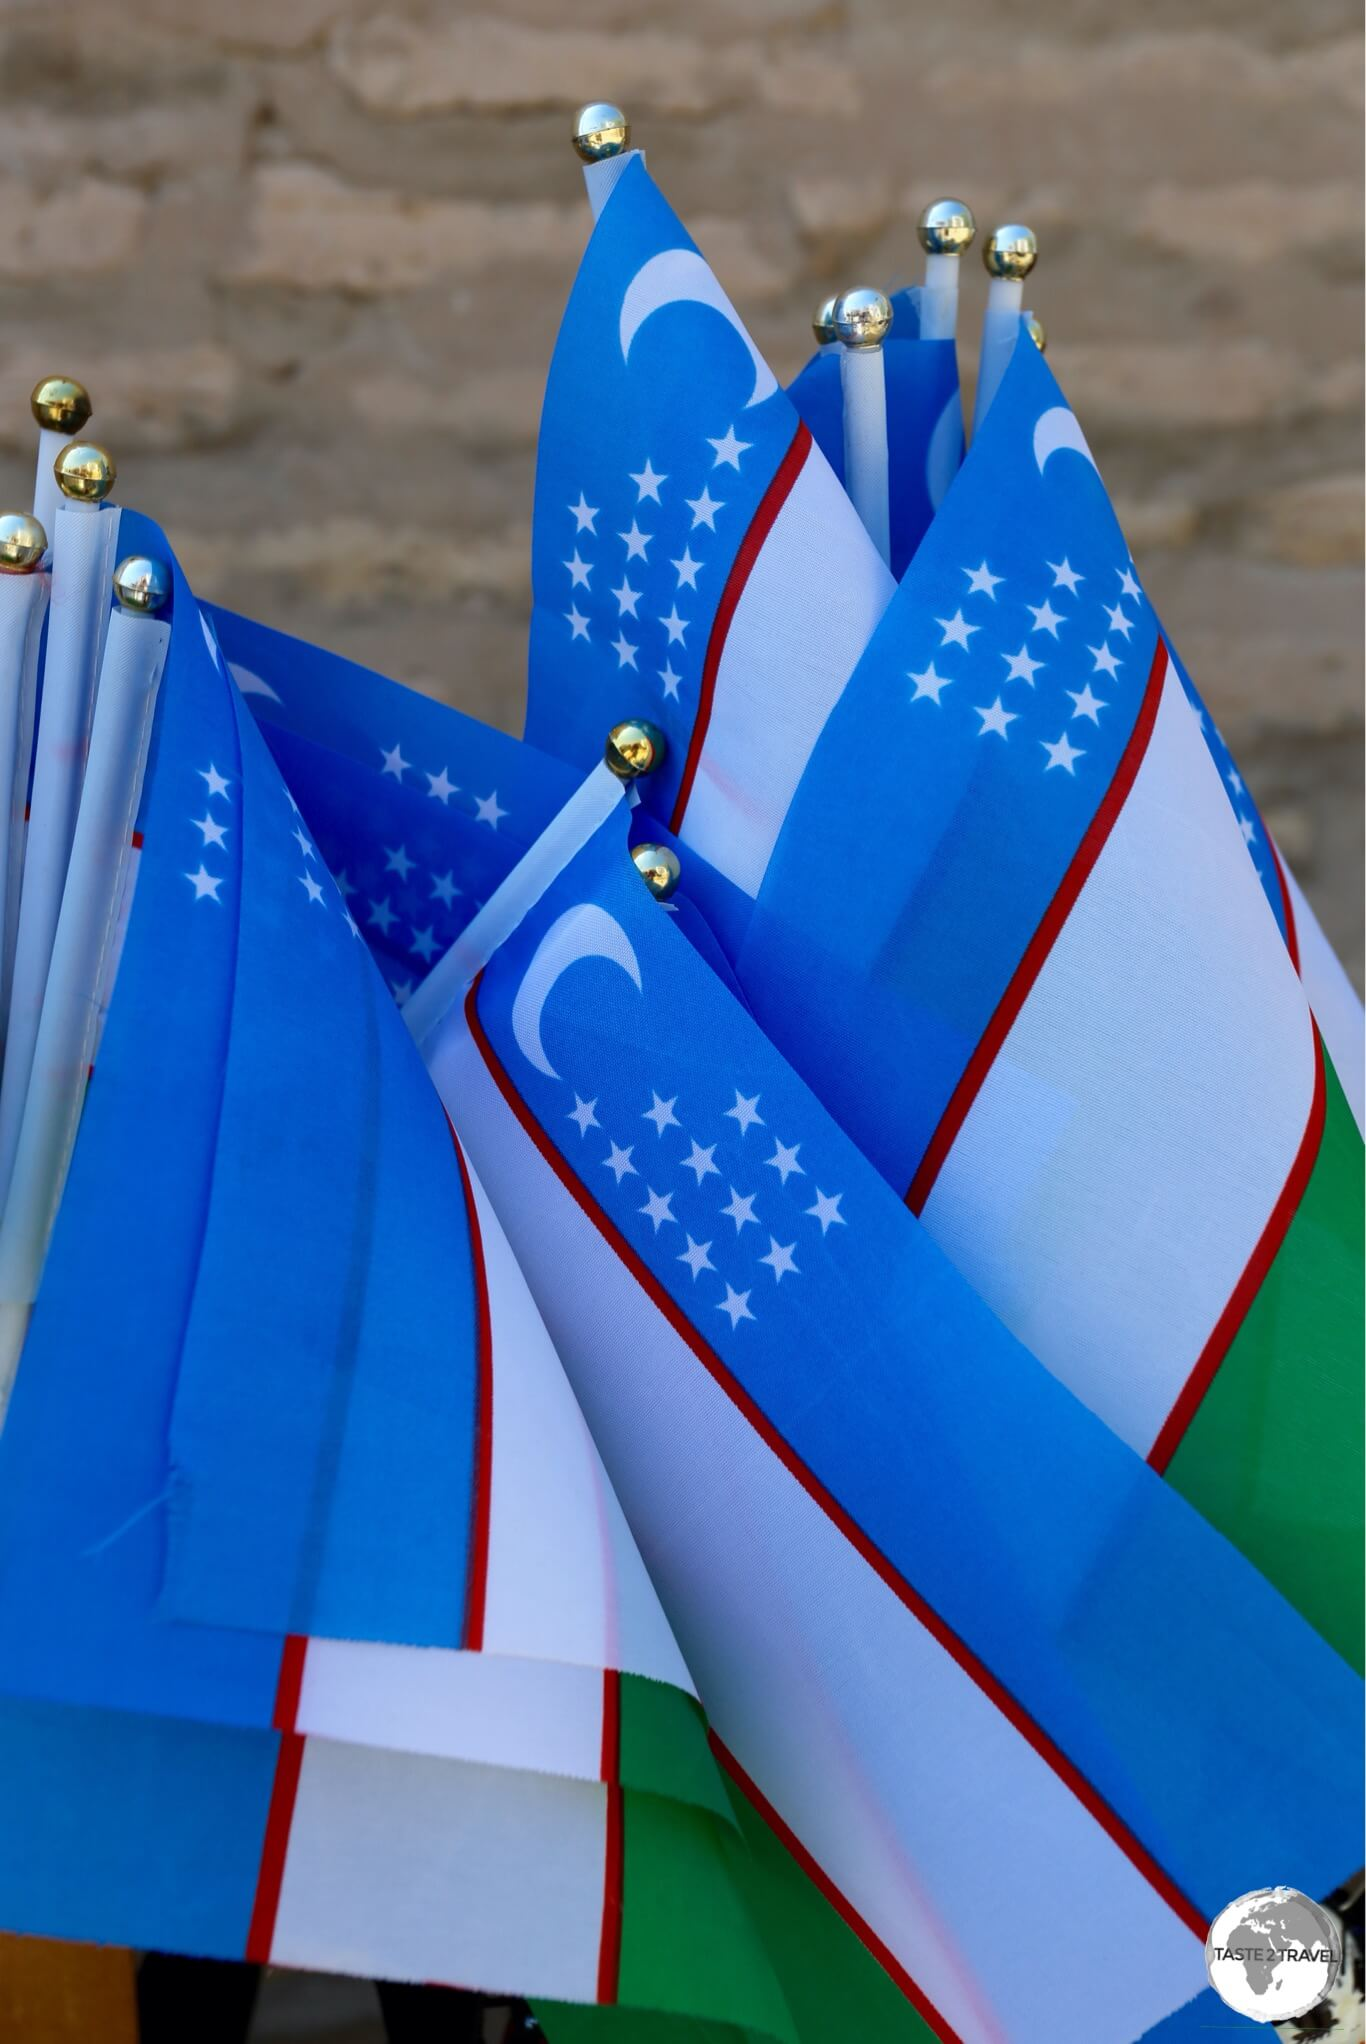 Uzbekistan flags for sale in Khiva.